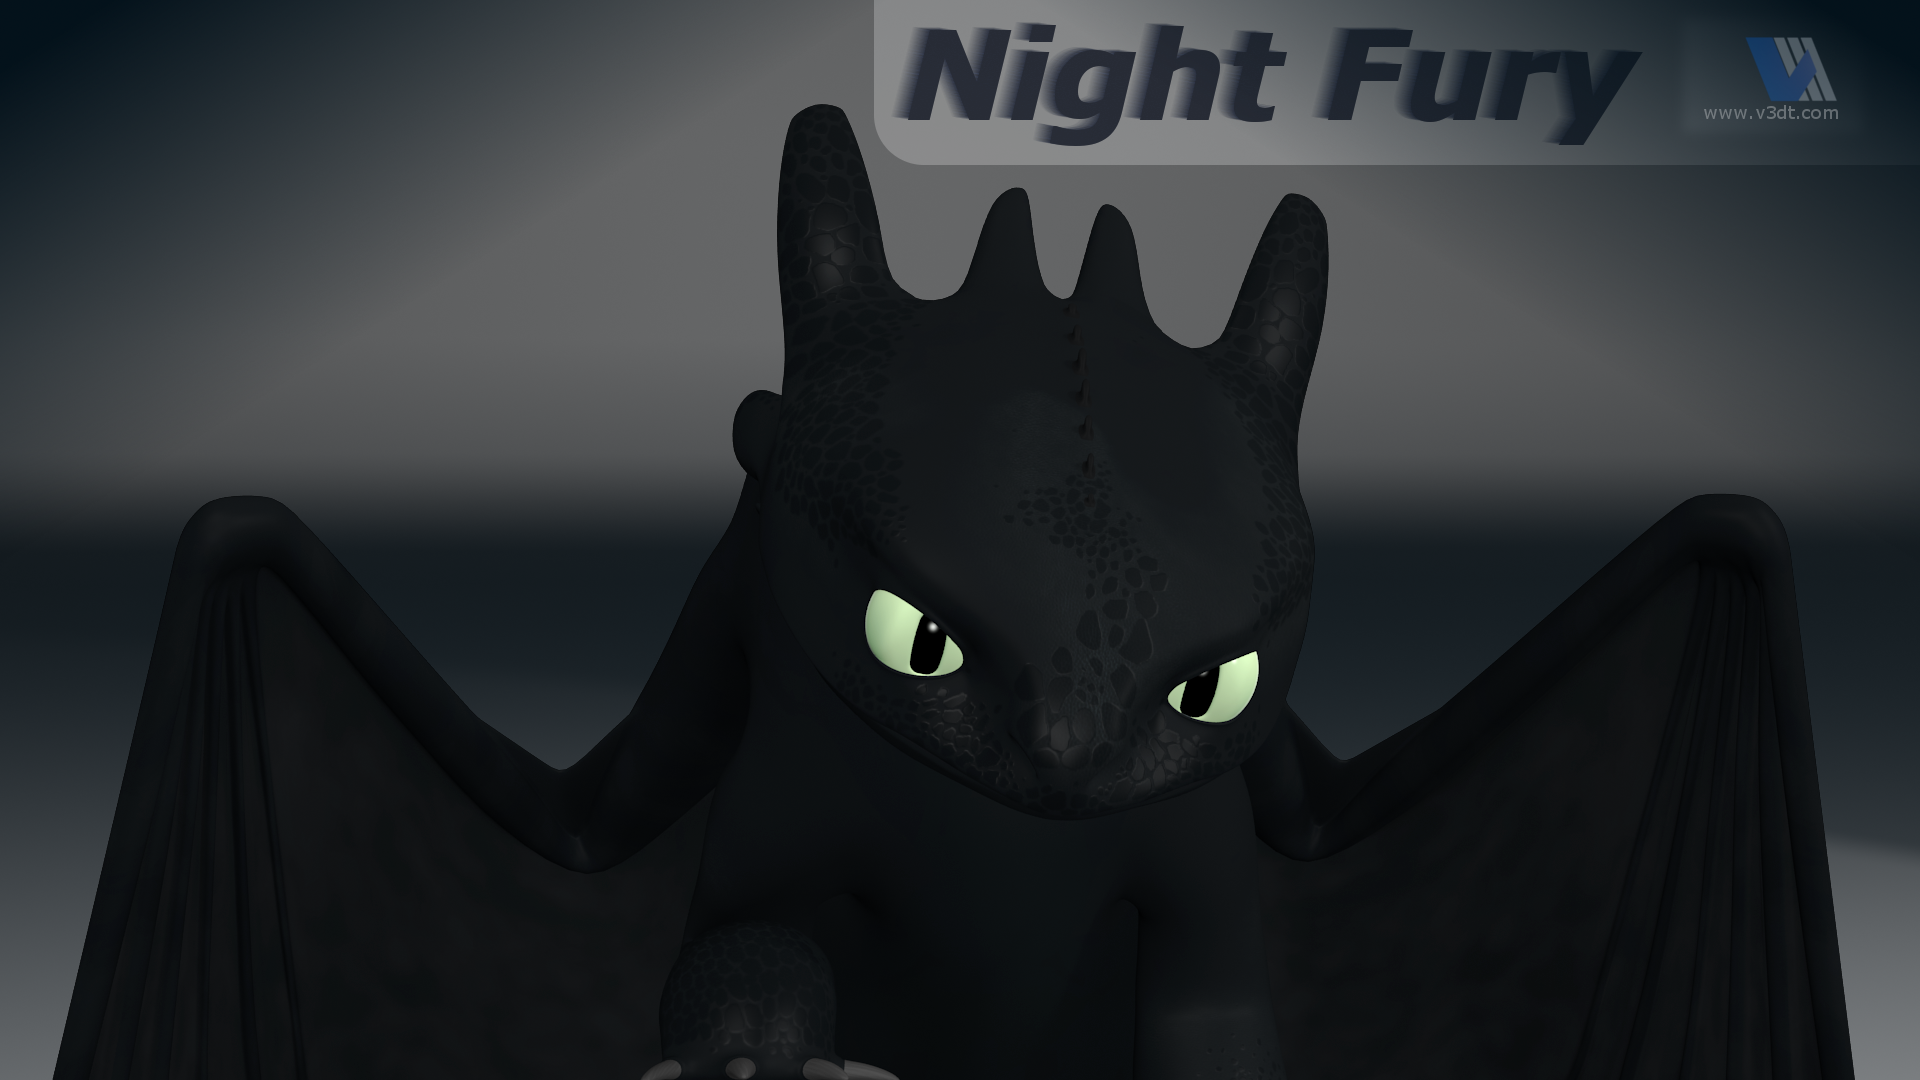 Night Fury BG 1080 4.f